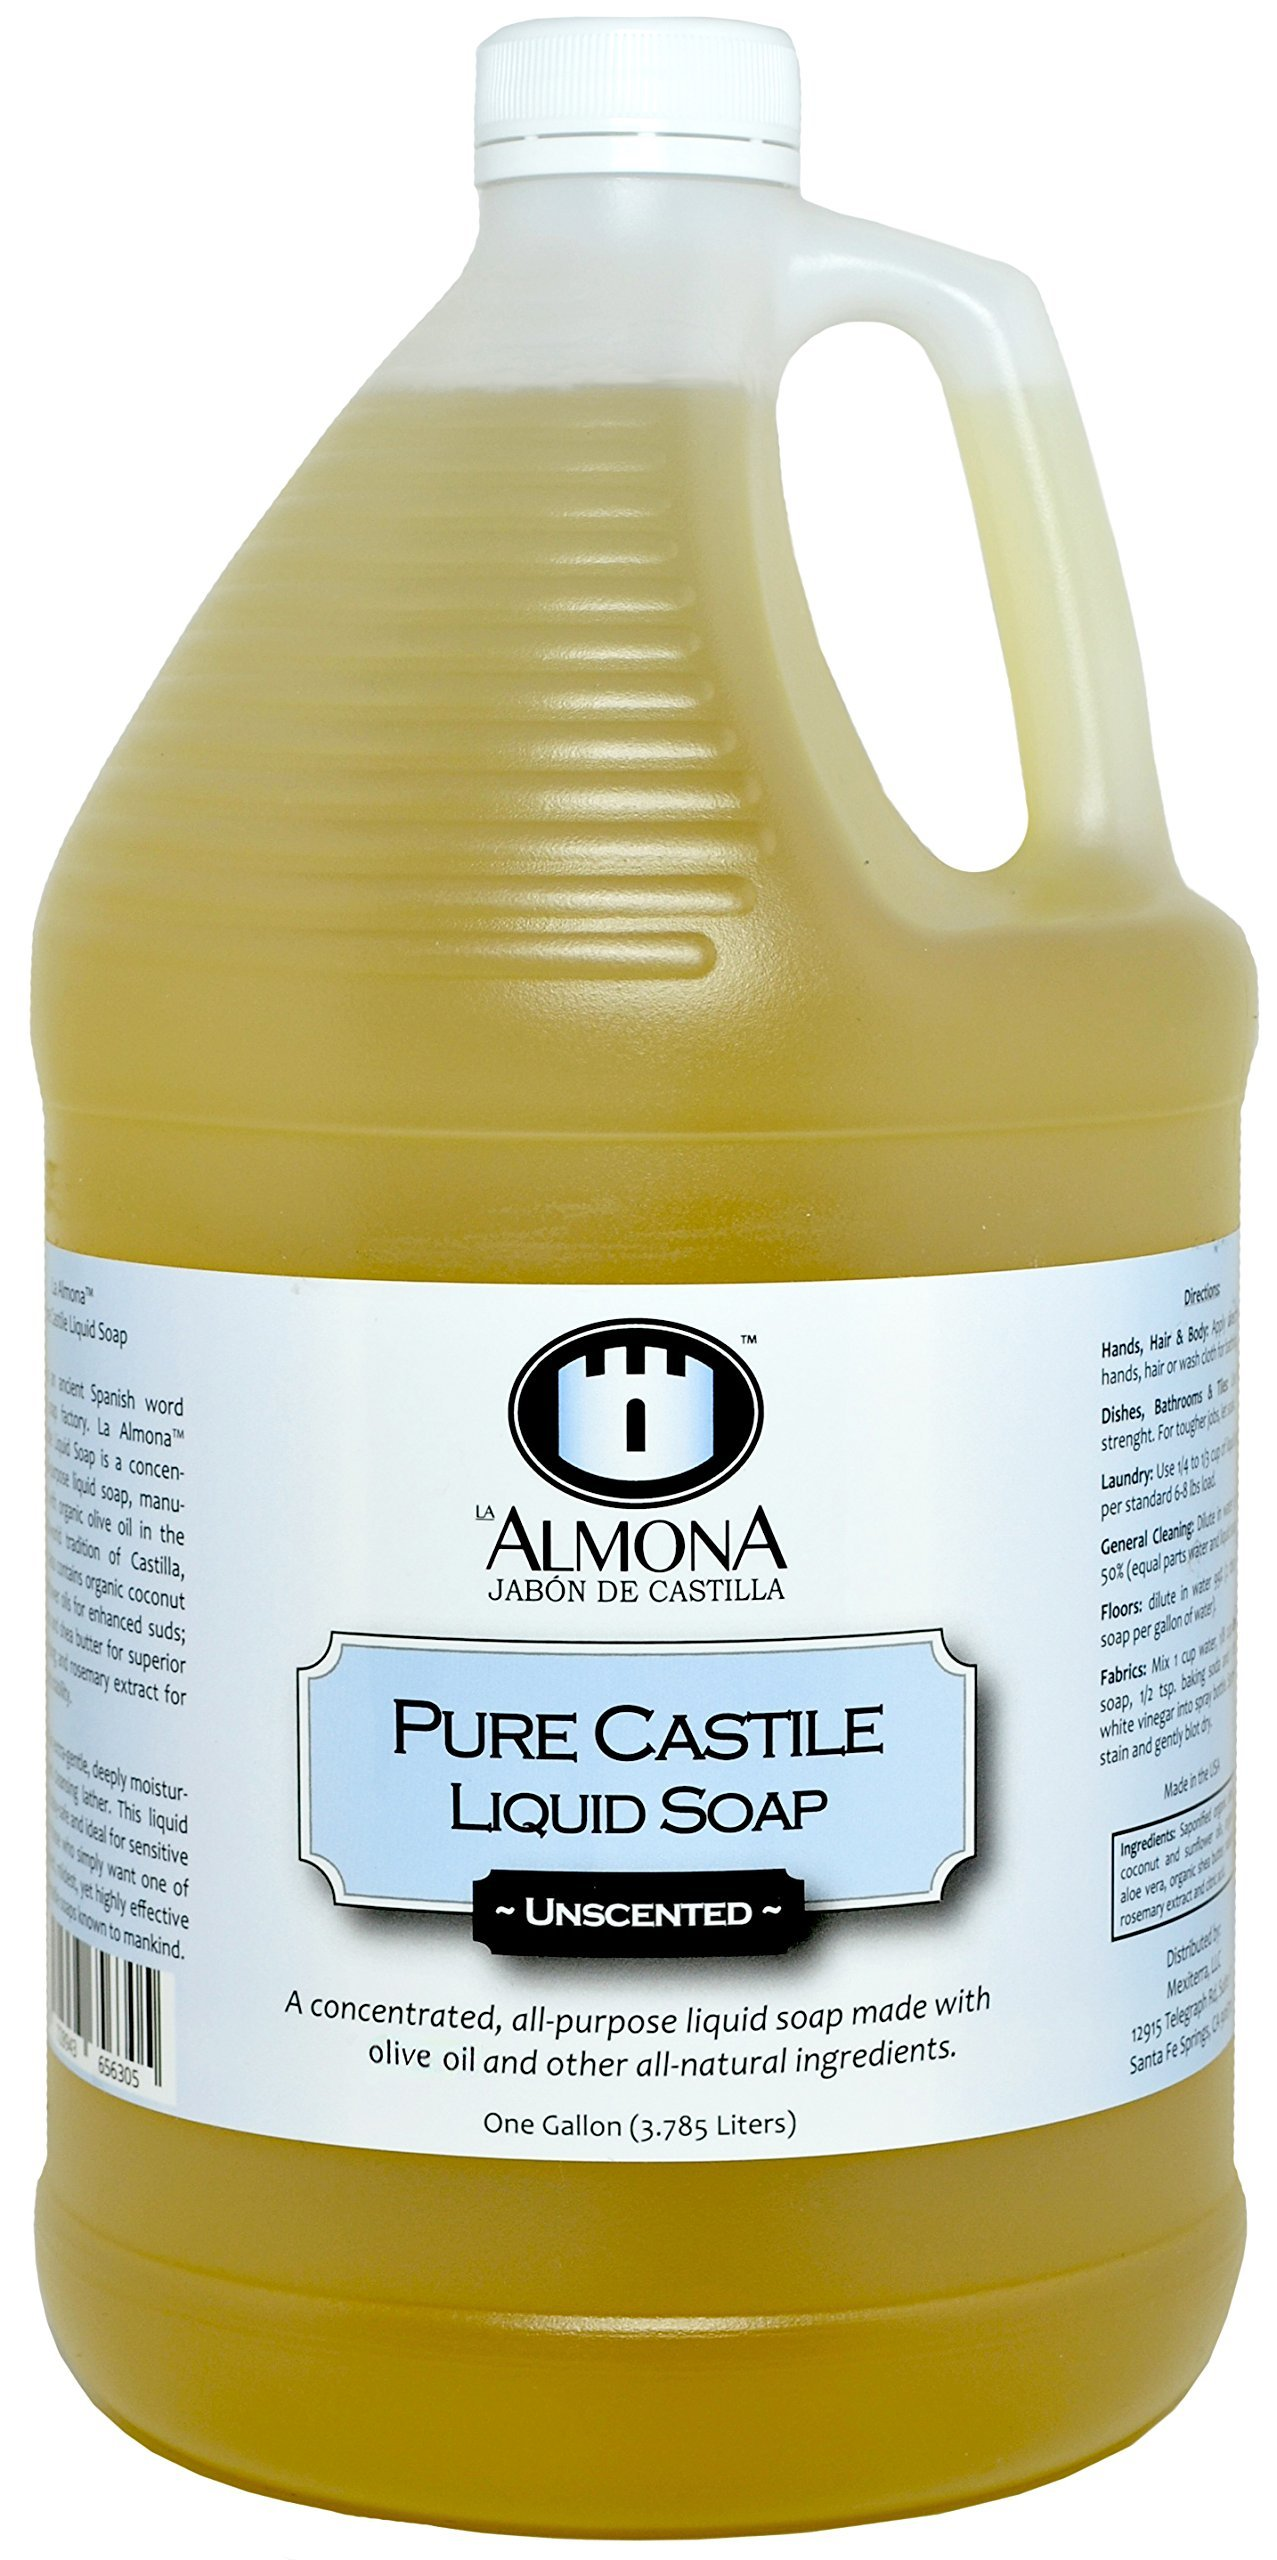 La Almona - Pure Castile Liquid Soap (Unscented), 1 Gallon by La Almona (Image #1)